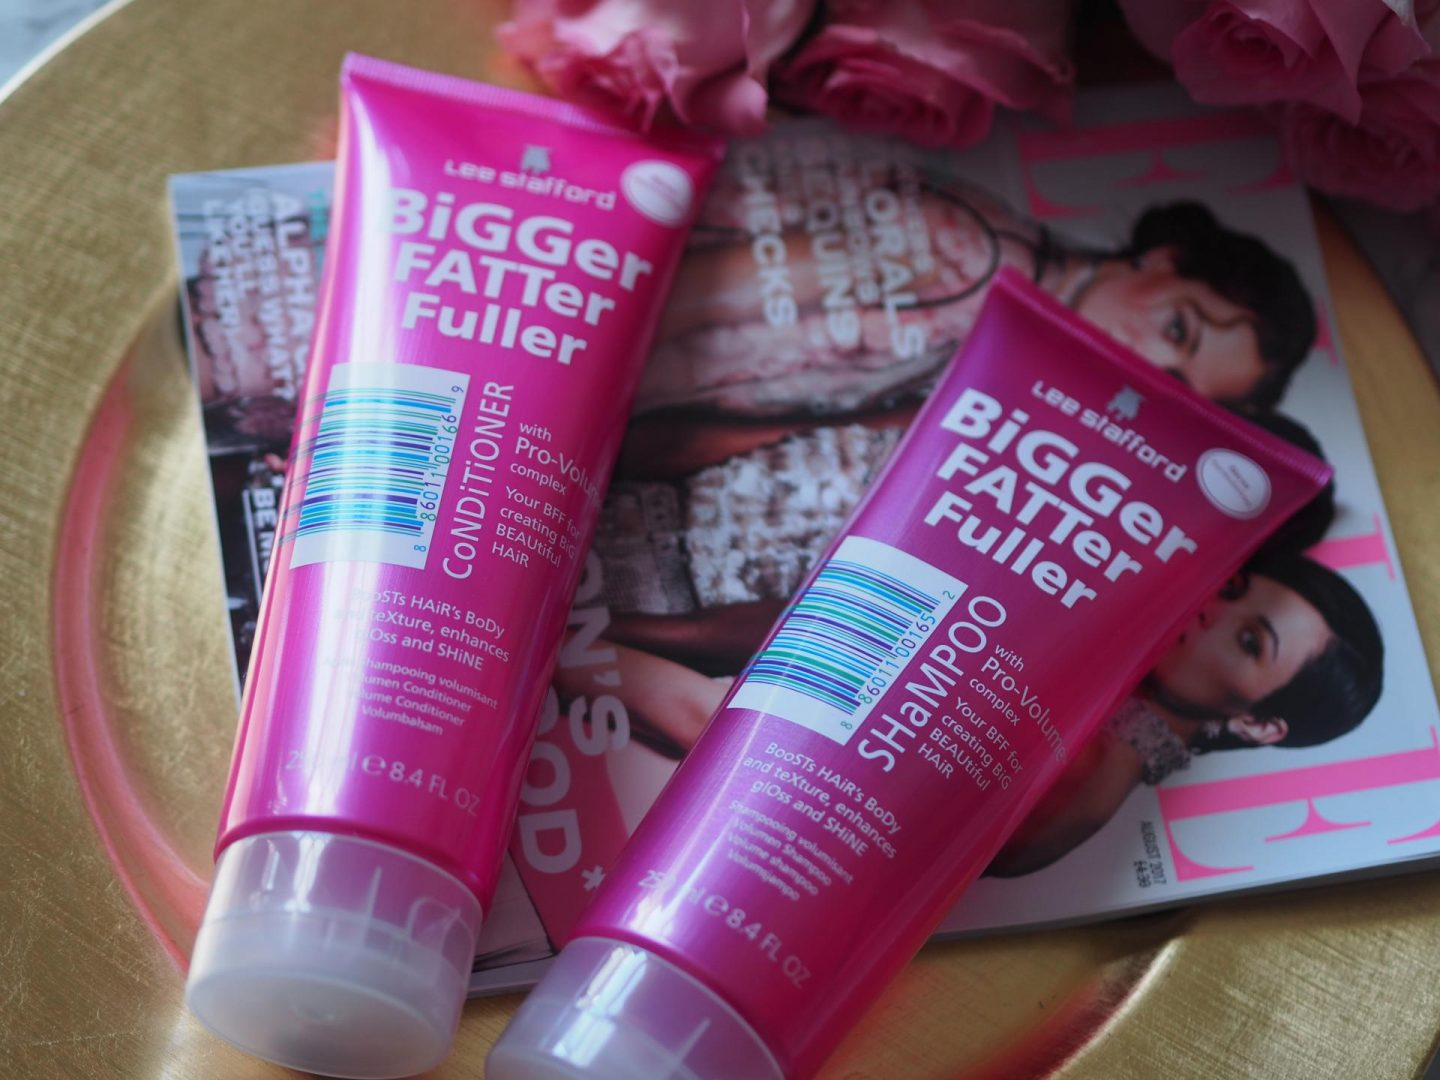 Budget Friendly Haircare - Product Lee Stafford Bigger Fatter Fuller Shampoo